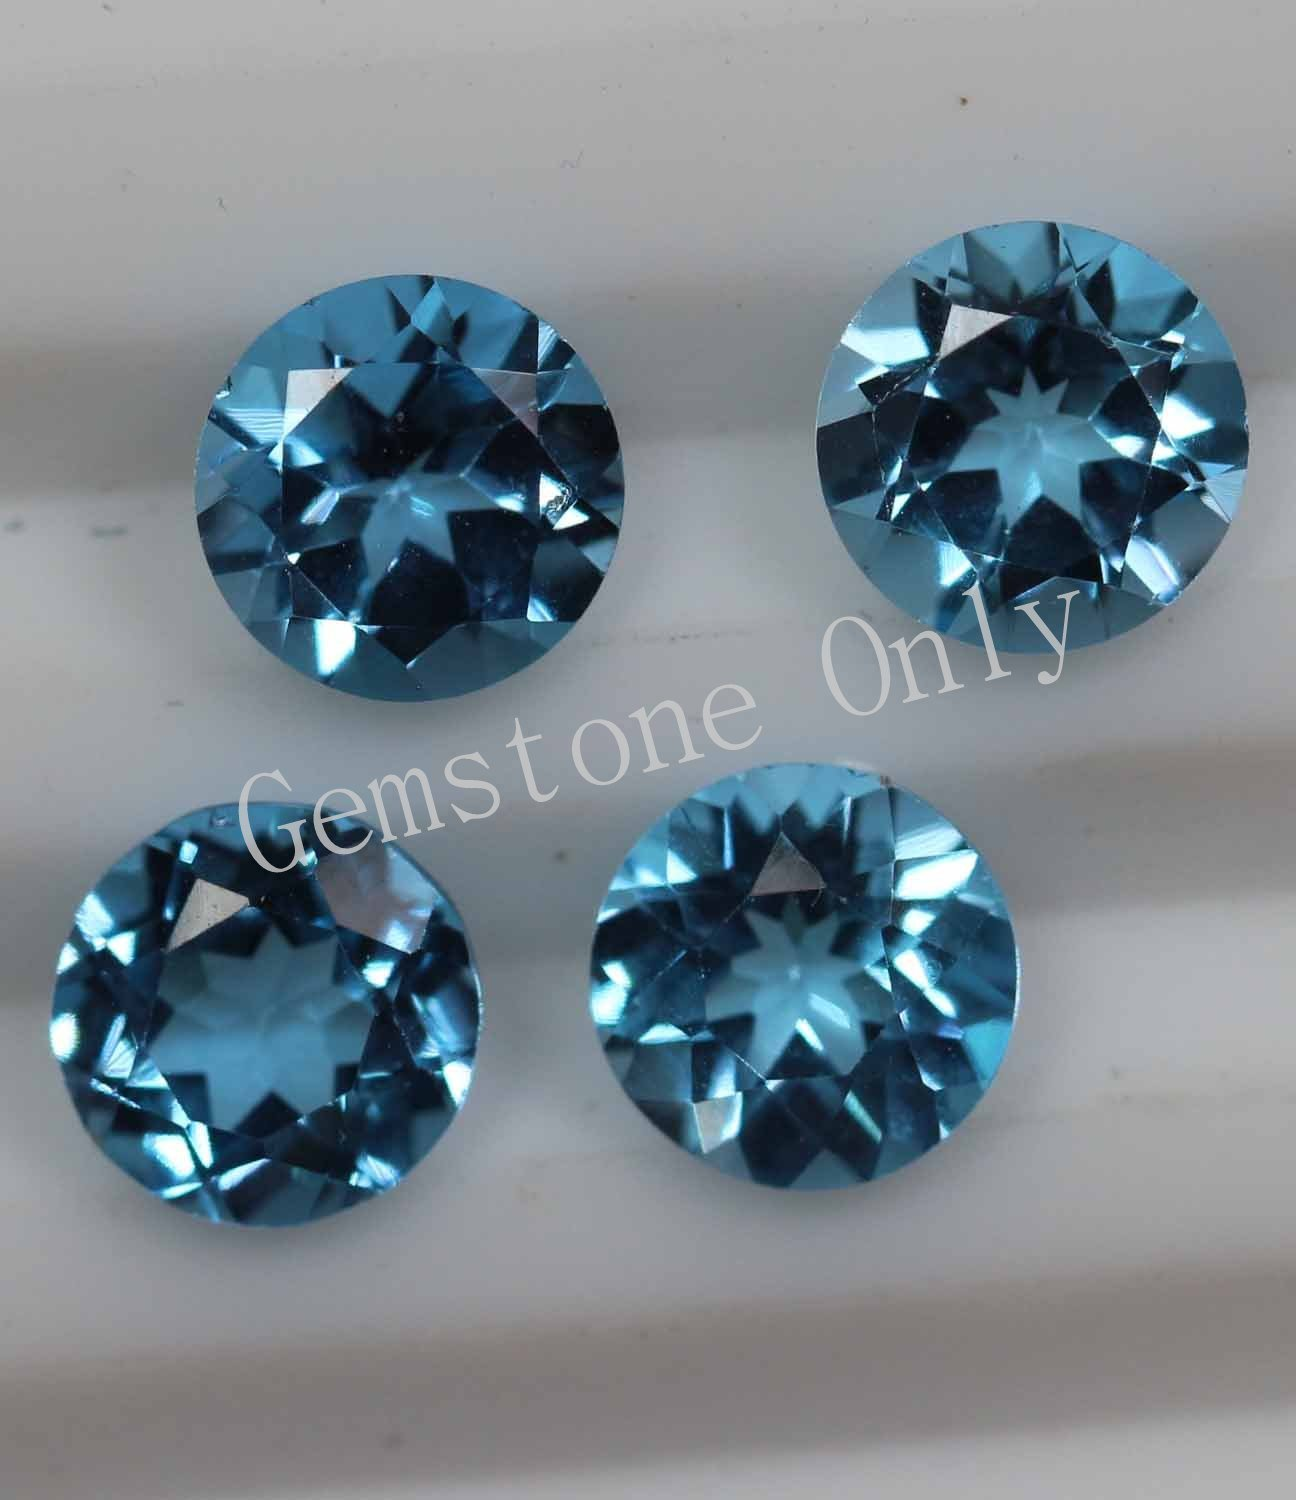 7mm Natural Swiss Blue topaz Faceted Cut Round 25 Pieces Blue Color Calibrated Size Loose Gemstone